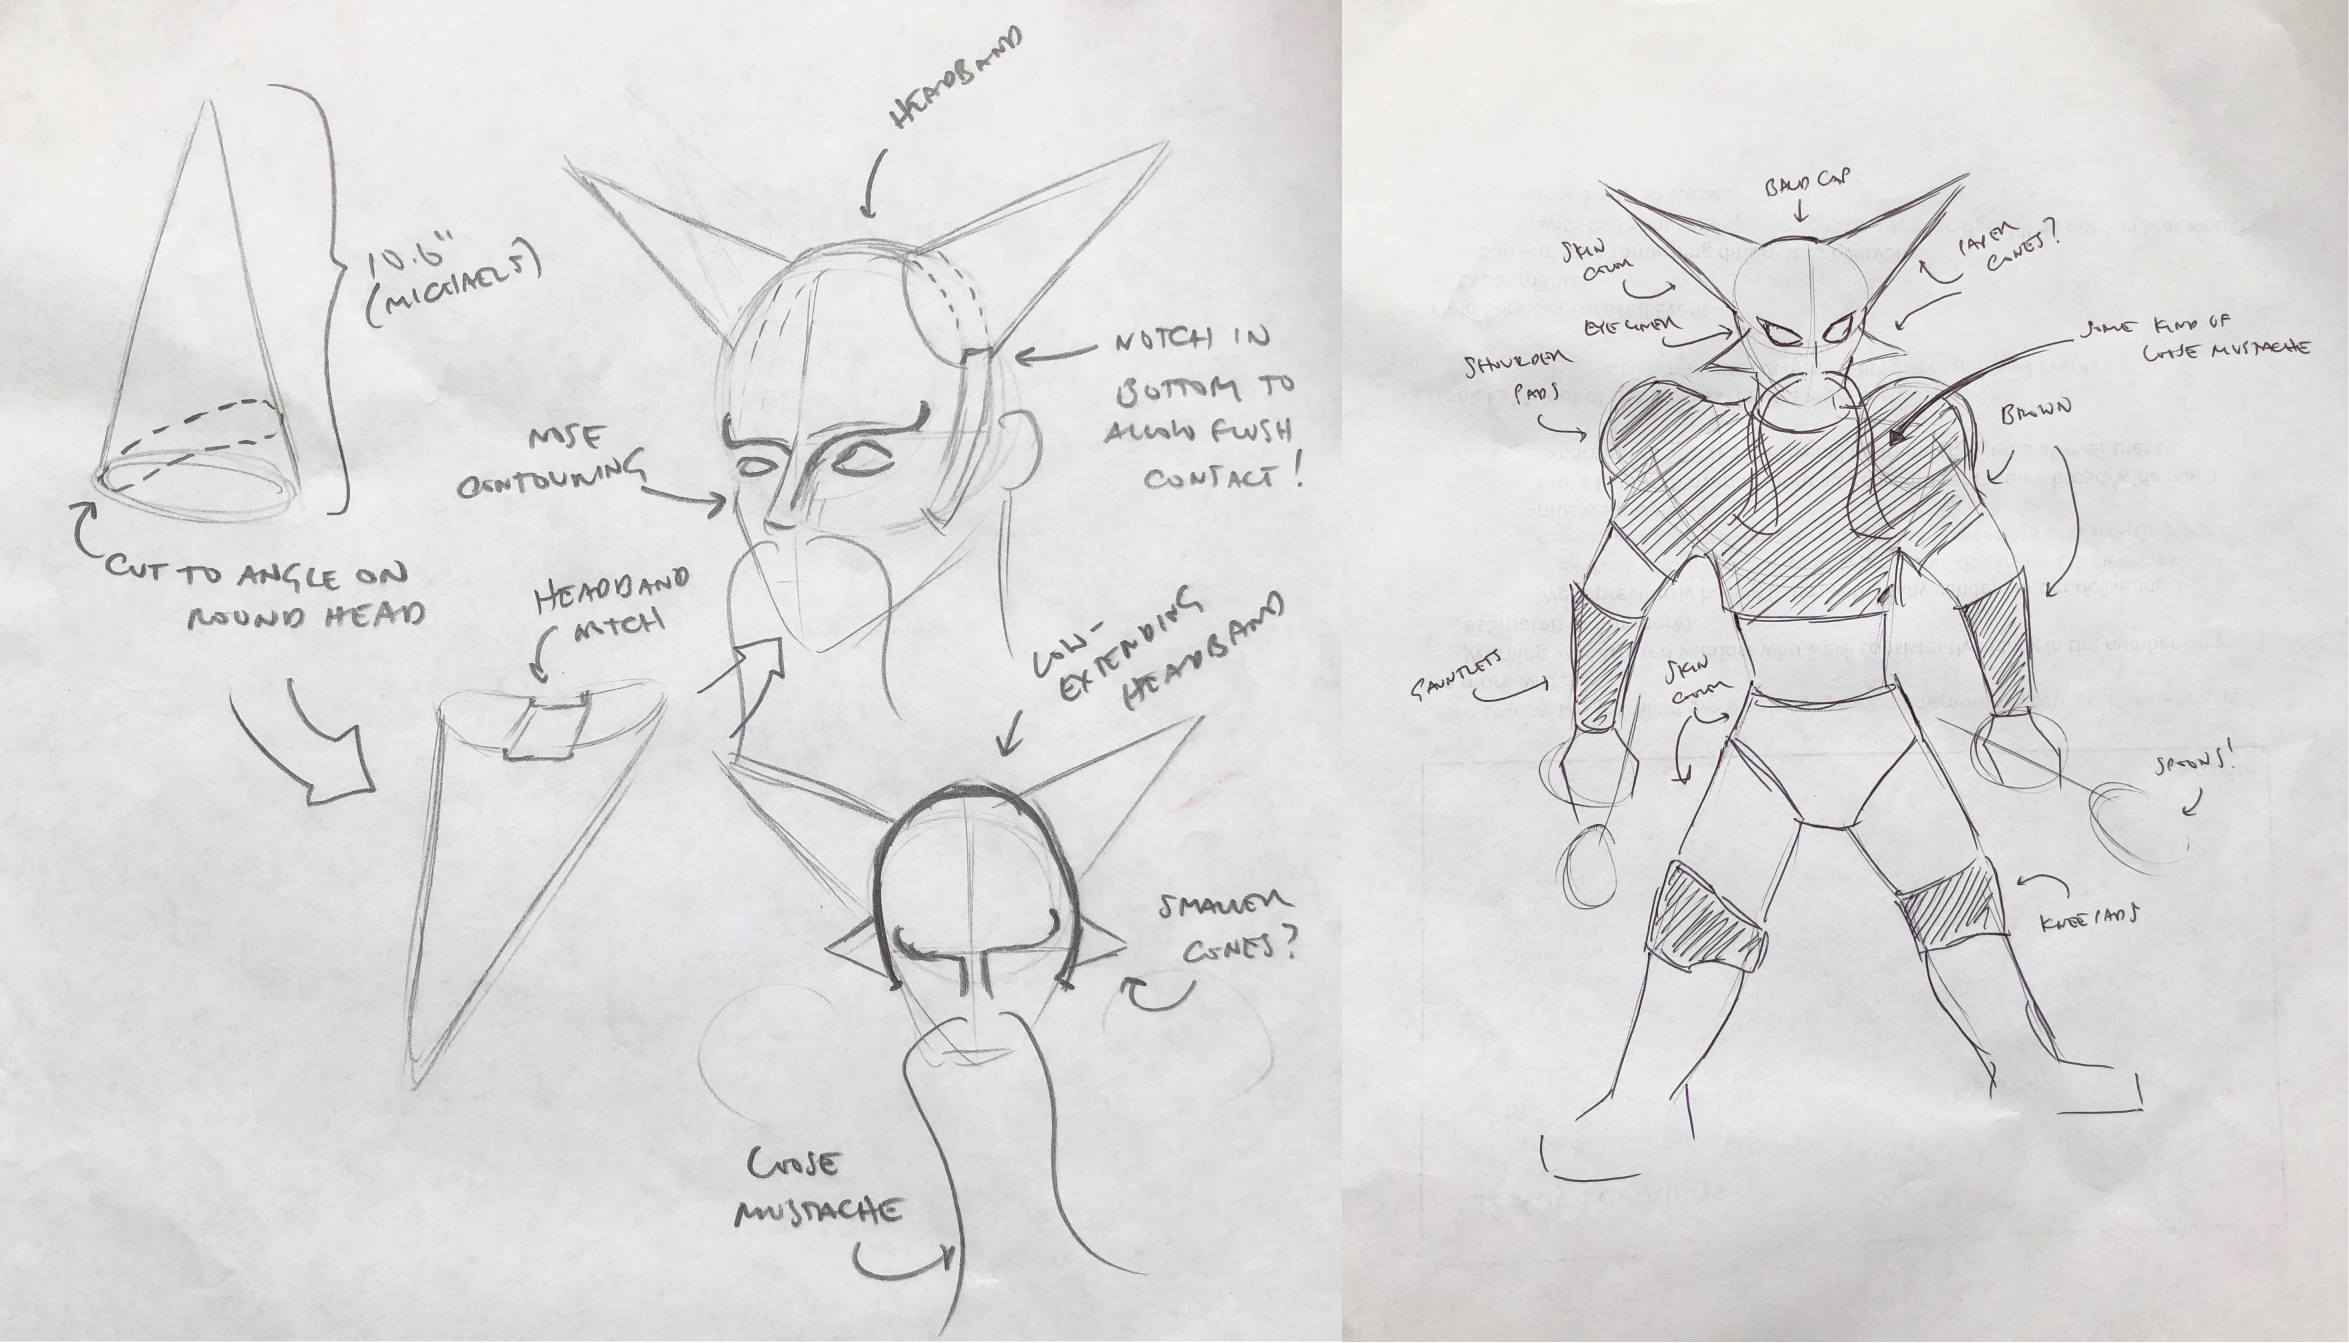 Sketches of mine showing planning out the Alakazam Halloween costume